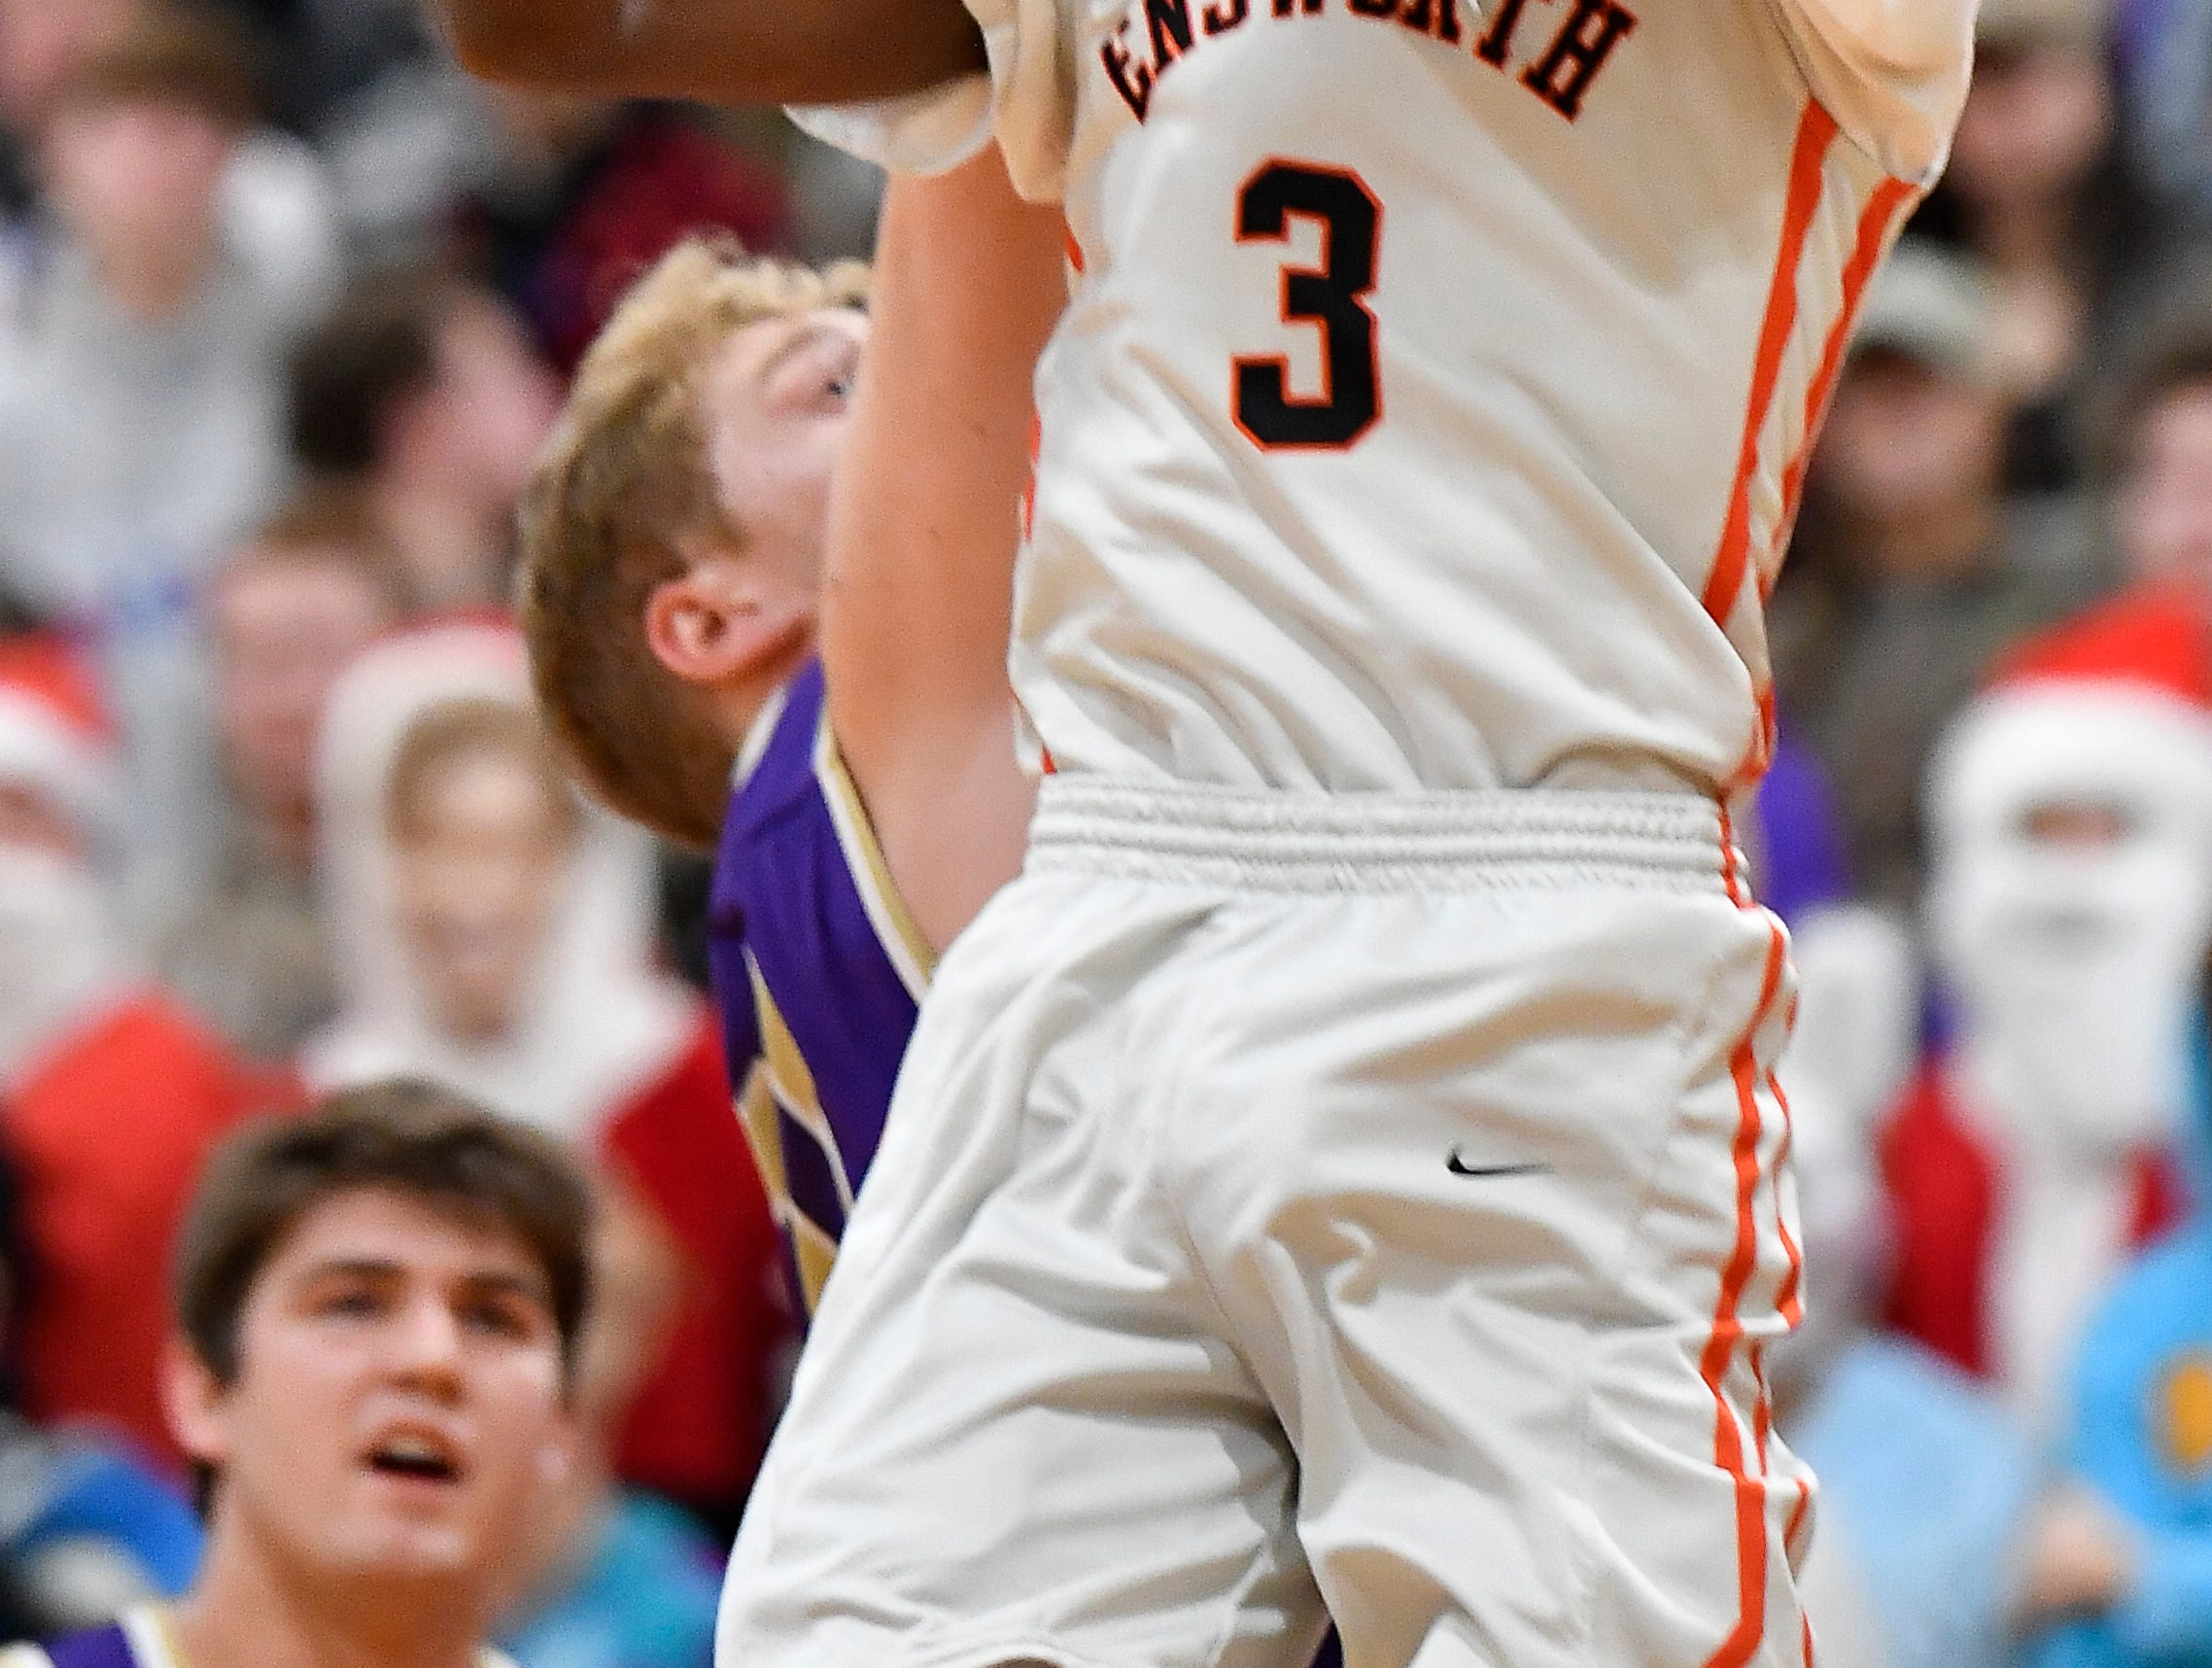 Ensworth guard Key Collier (3) shoots past a CPA defender during their game at Ensworth High School Tuesday, Dec. 11, 2018, in Nashville, Tenn.